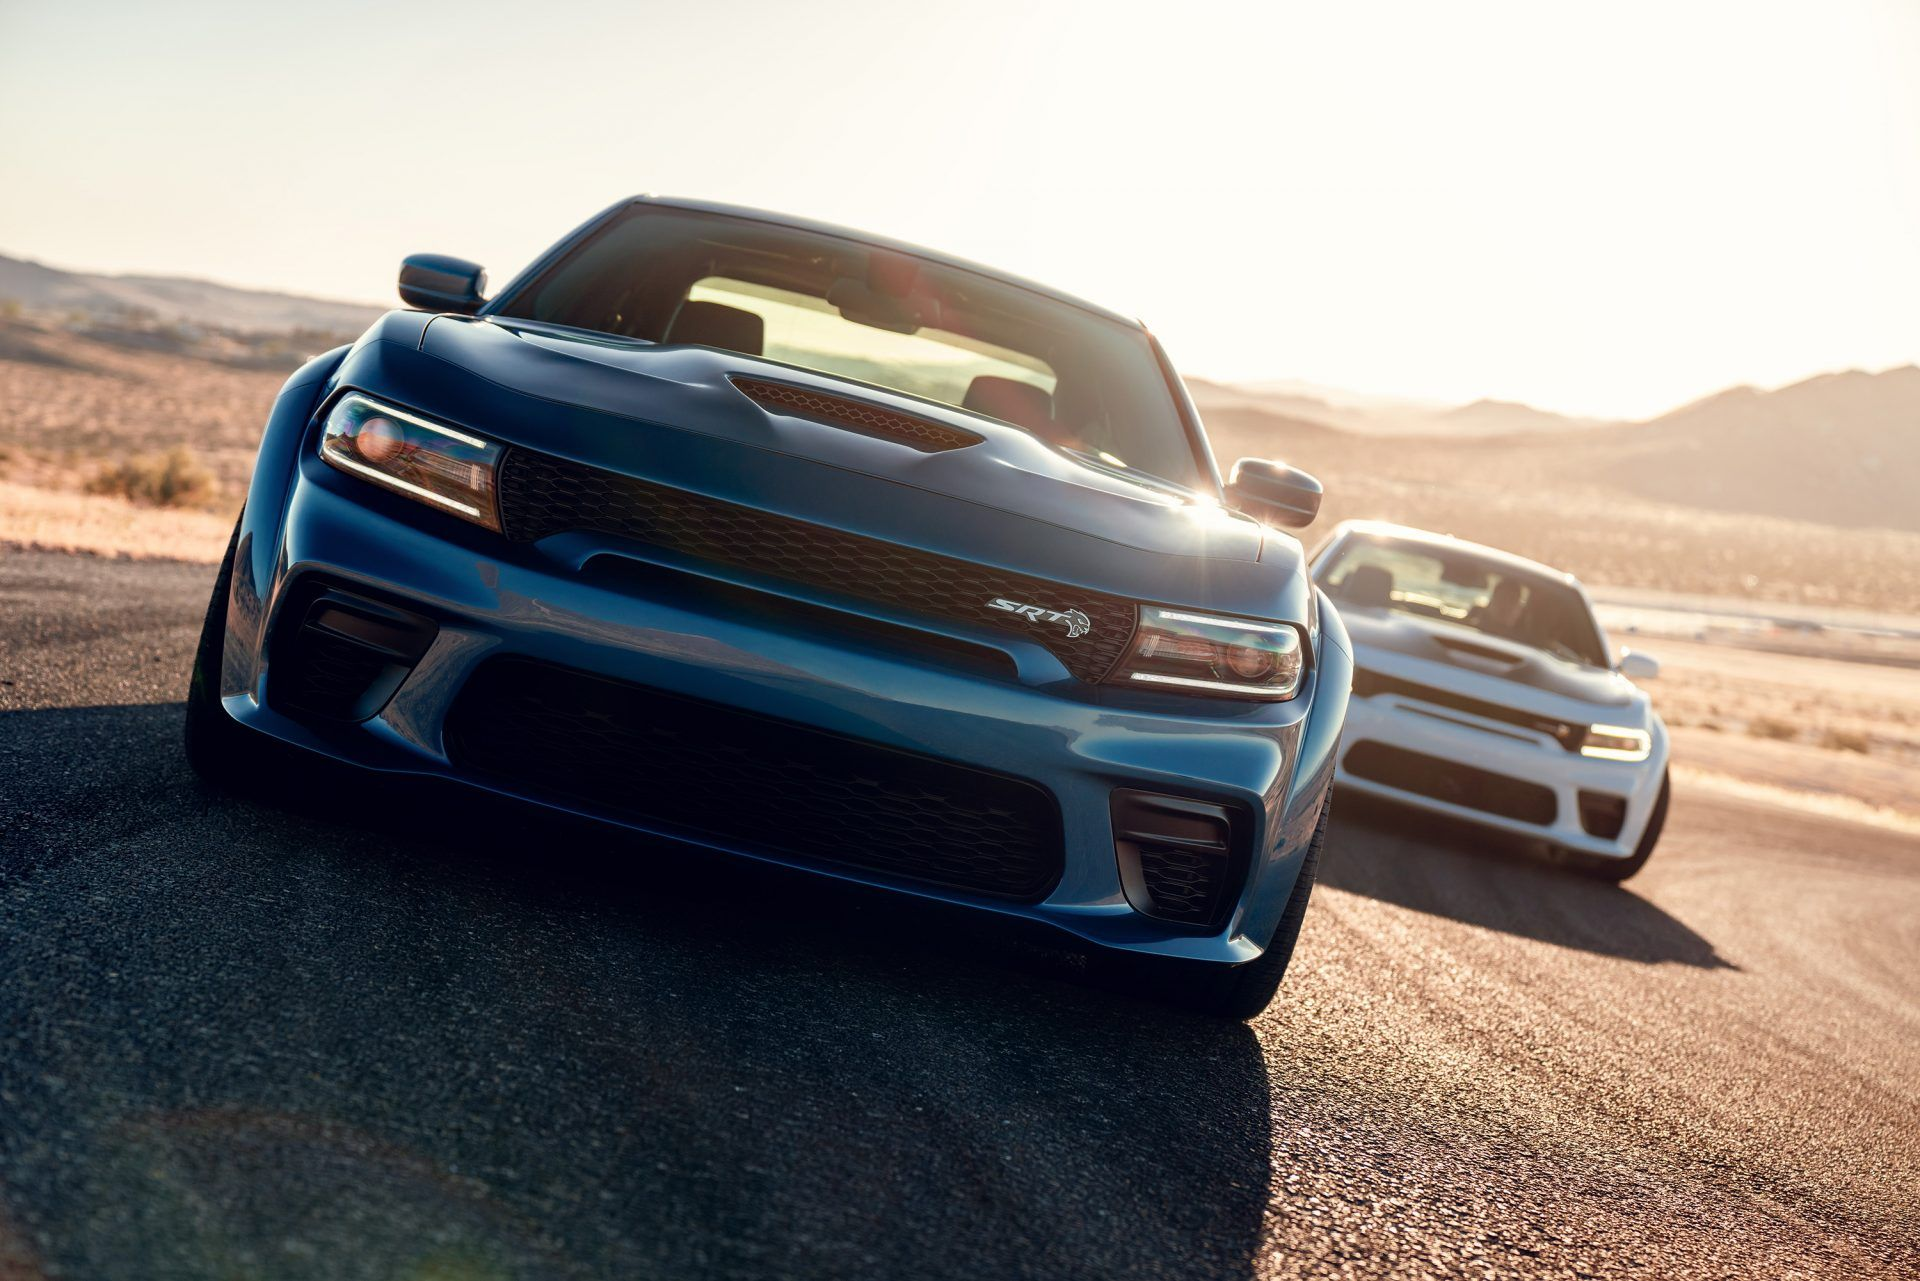 The 2020 Dodge Charger Has A Very Affordable Starting Price Of 31 390 The Charger Lineup Starts With The Sxt In Rear Wheel Drive Trim With T Charger Srt Dodge Charger Srt Charger Srt